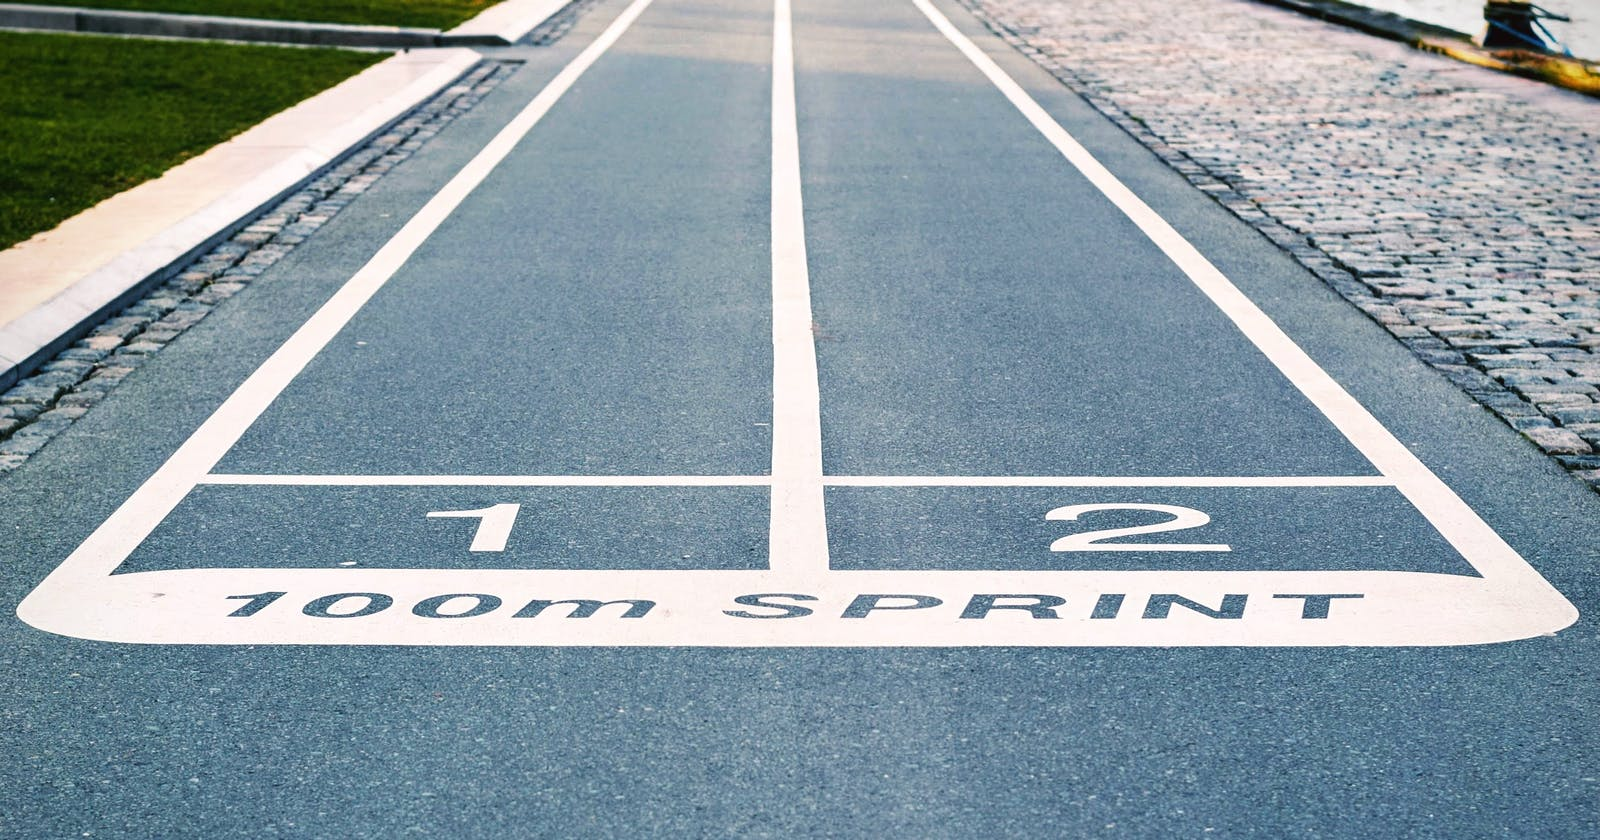 7 Reasons Your Team Can't Finish a Sprint